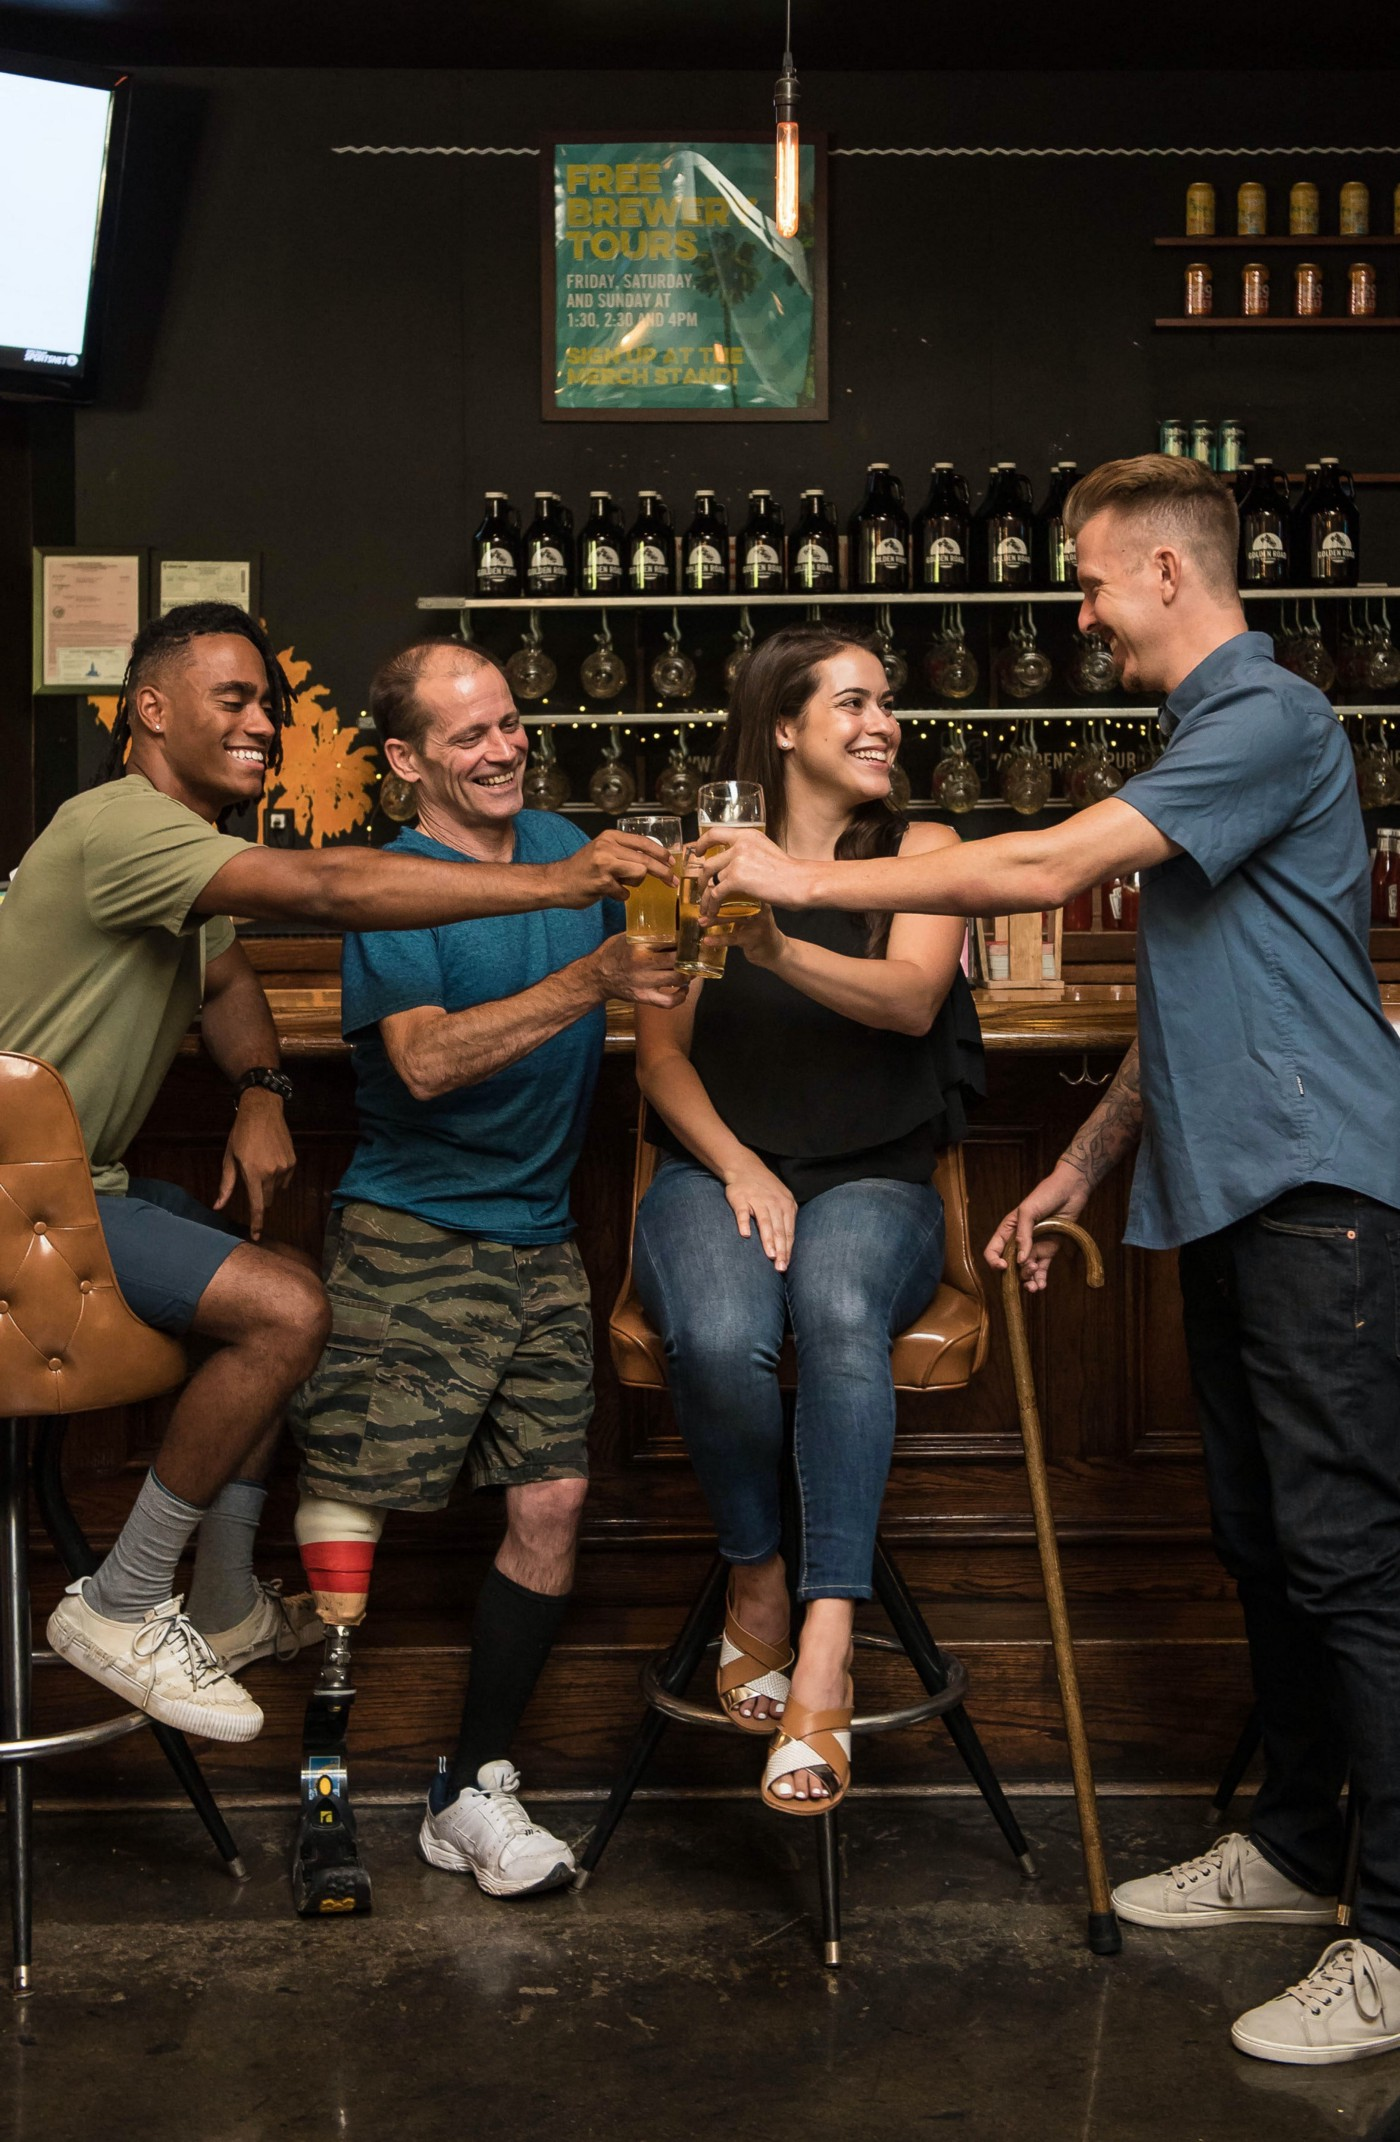 Four People Smiling Holding Glasses with Drinks. A bar is behind them. One holds a can while standing. The other standing person has a prosthetic leg.